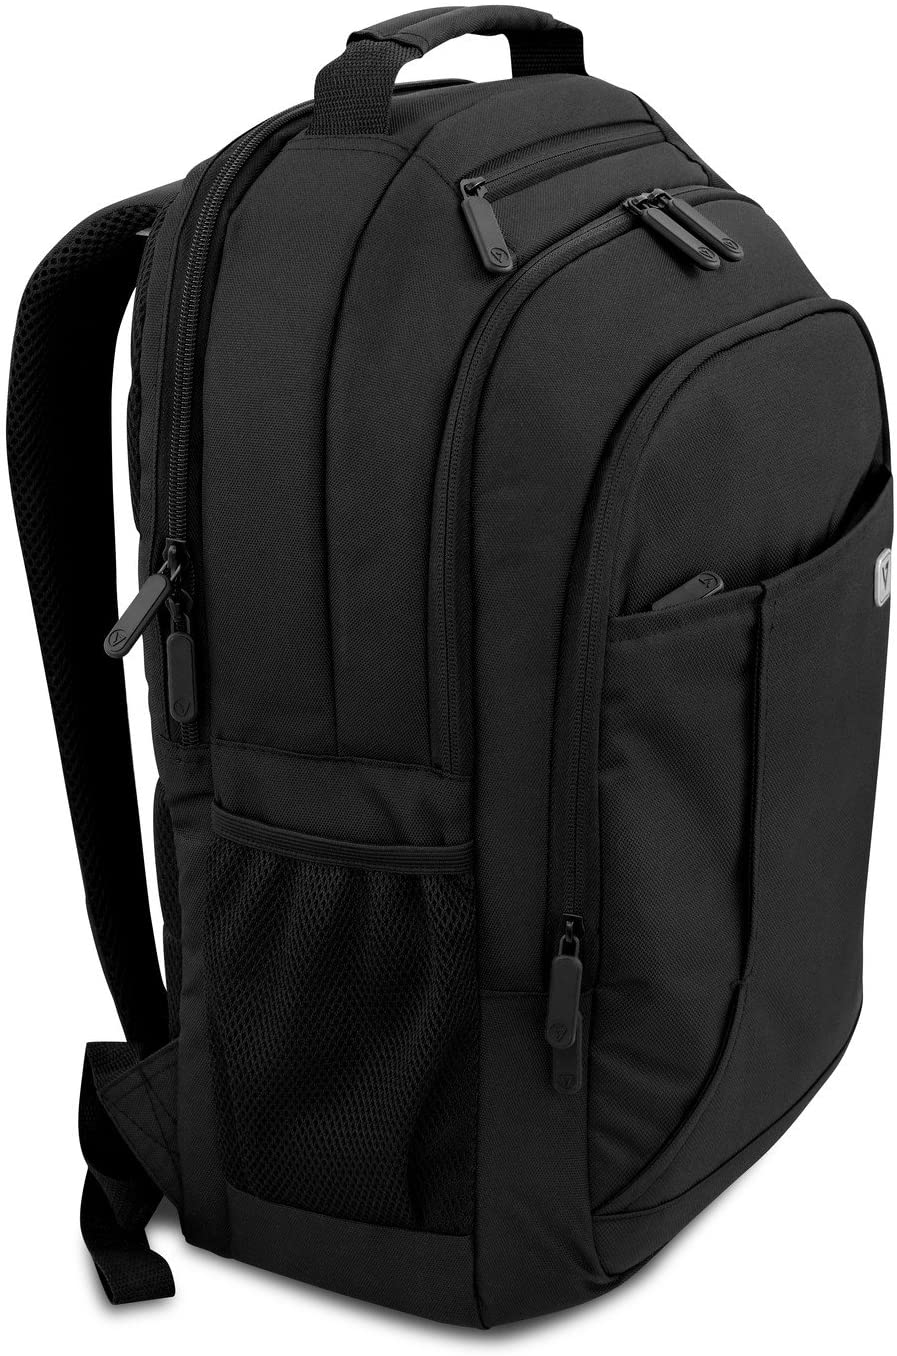 """V7 16"""" Professional Laptop Backpack for Business Professionals, College Students and Travelers Made of Water Resistant Polyester - CBP16-BLK-9N"""